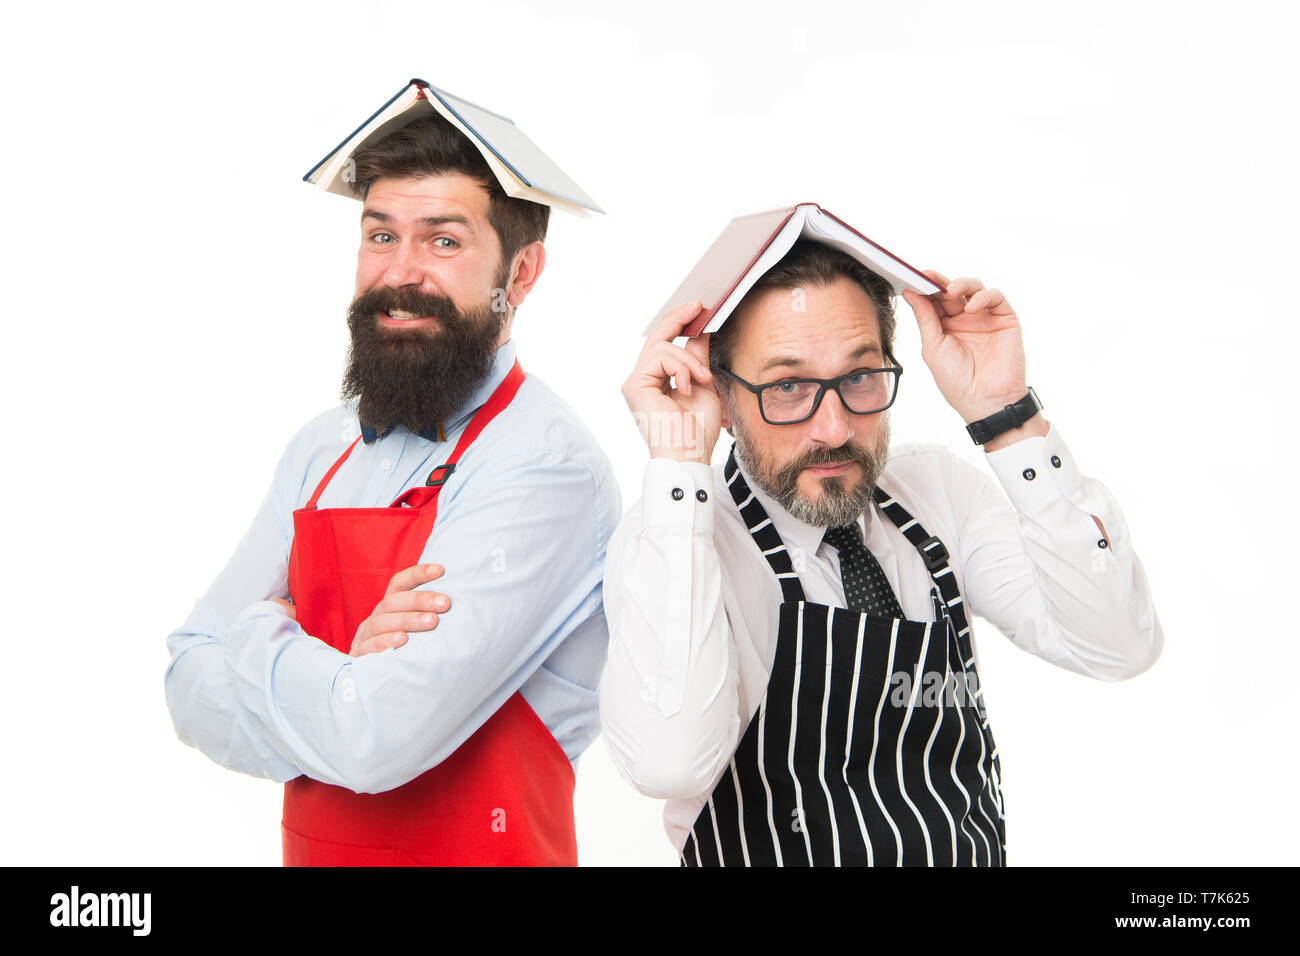 Men bearded apron reading book about culinary. Men in charge household. Some problems. Household duties. Book as roof on head. Household is boring. Who rules in house. Responsibilities of household. - Stock Image